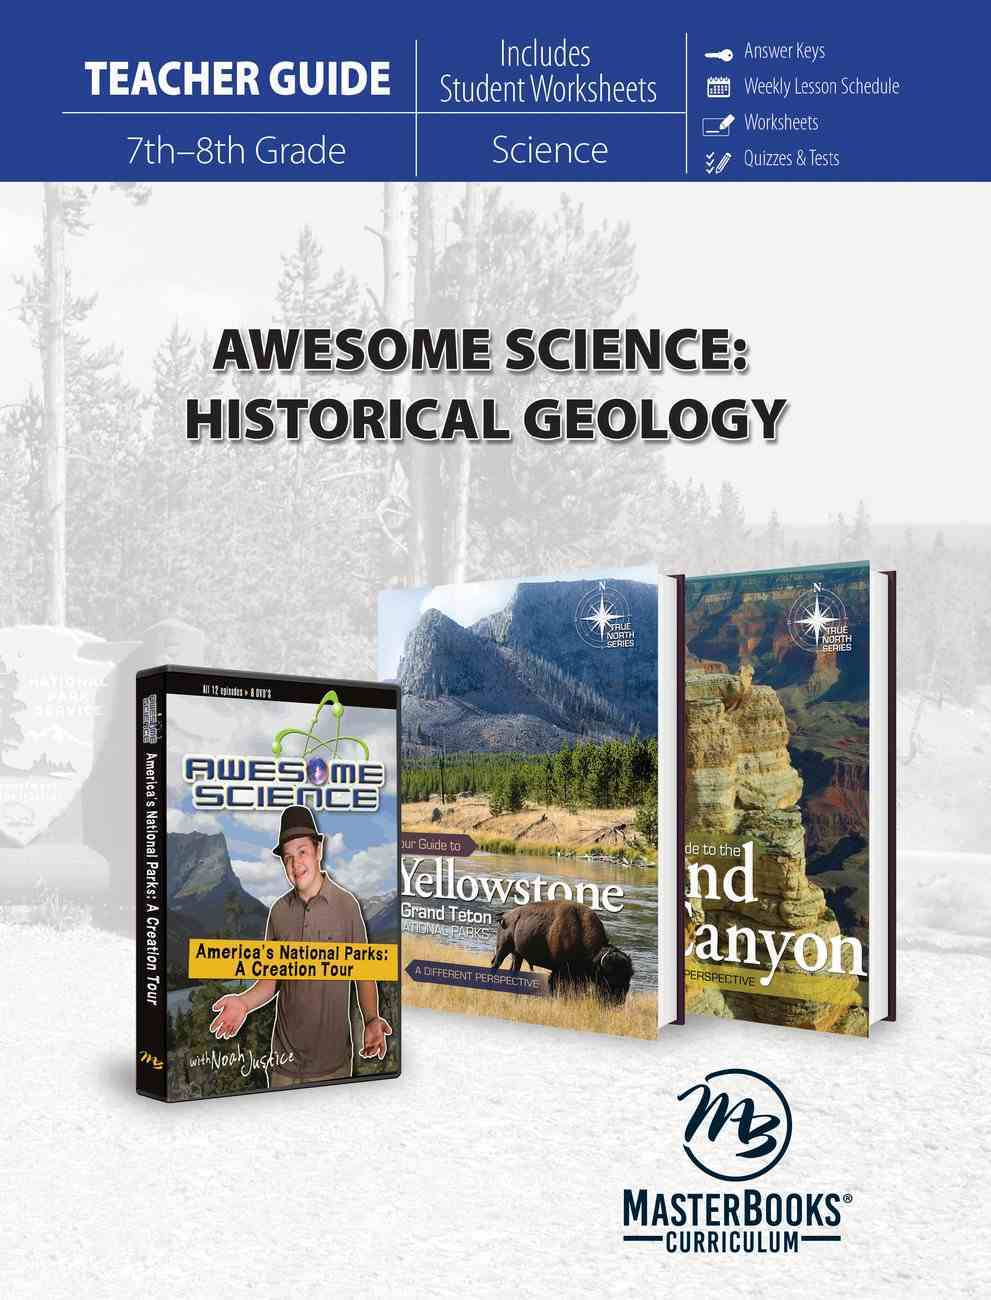 Historical Geology (Teacher's Guide) (Awesome Science Series) Paperback